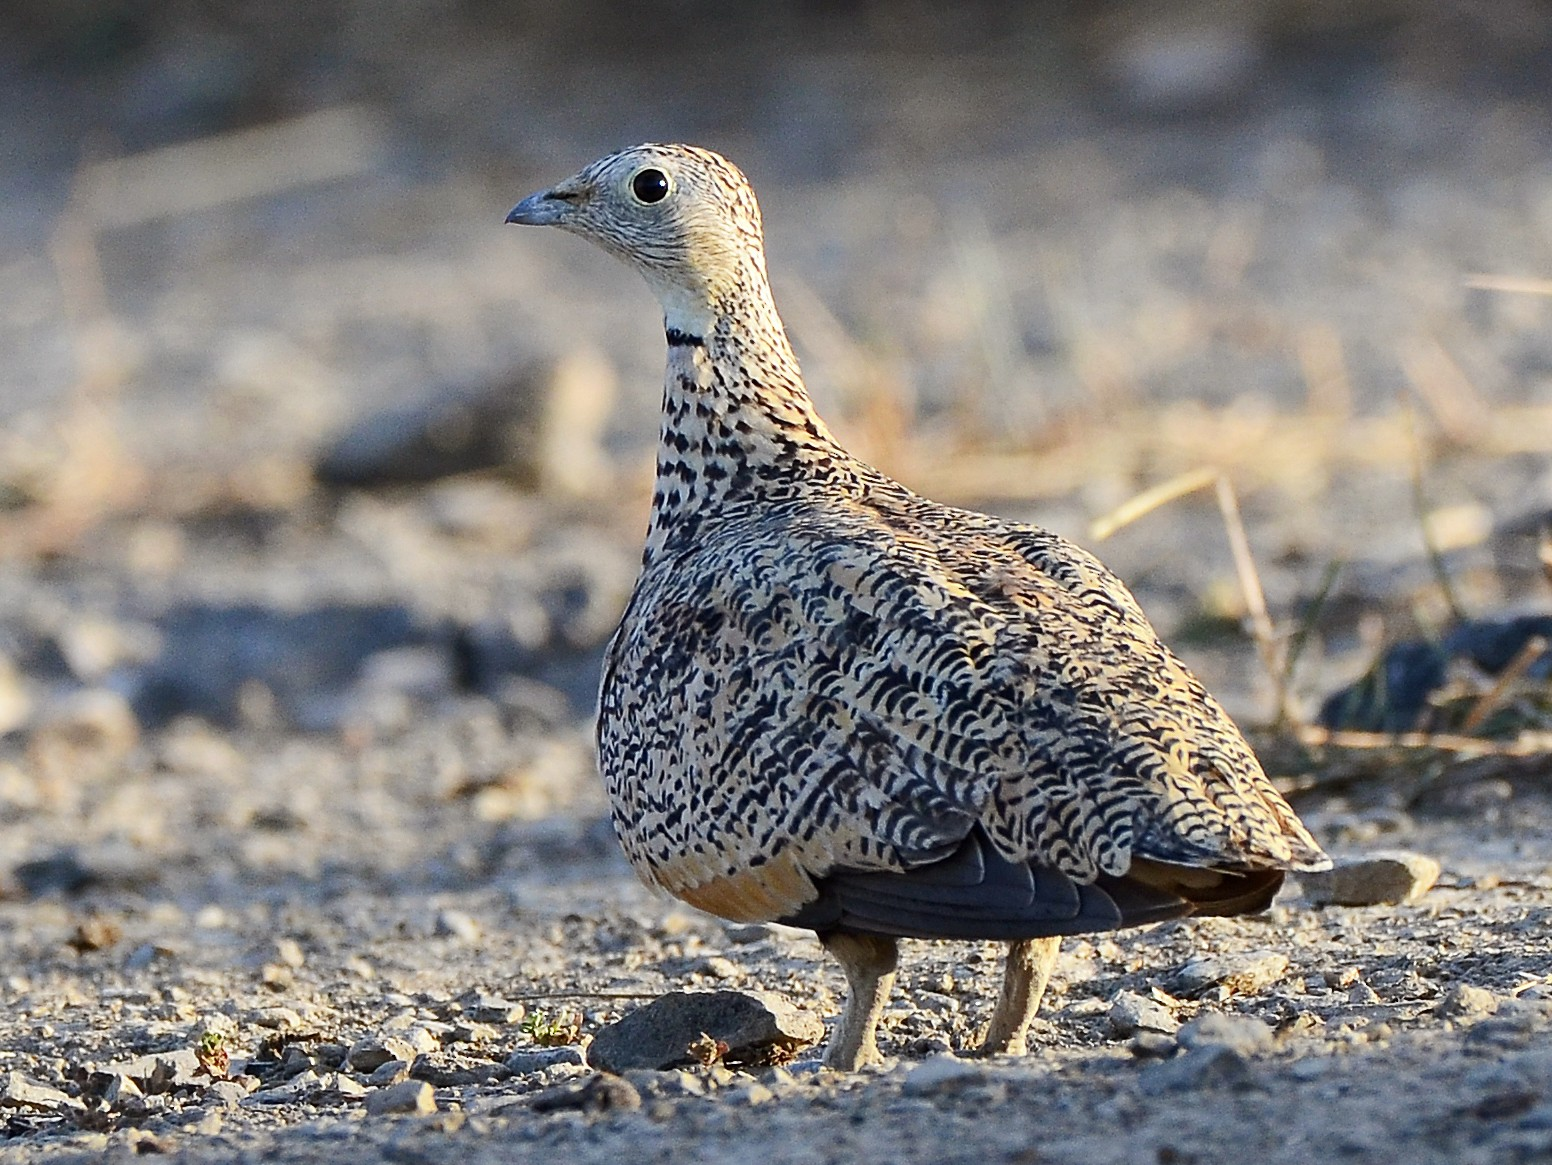 Black-bellied Sandgrouse - José Frade